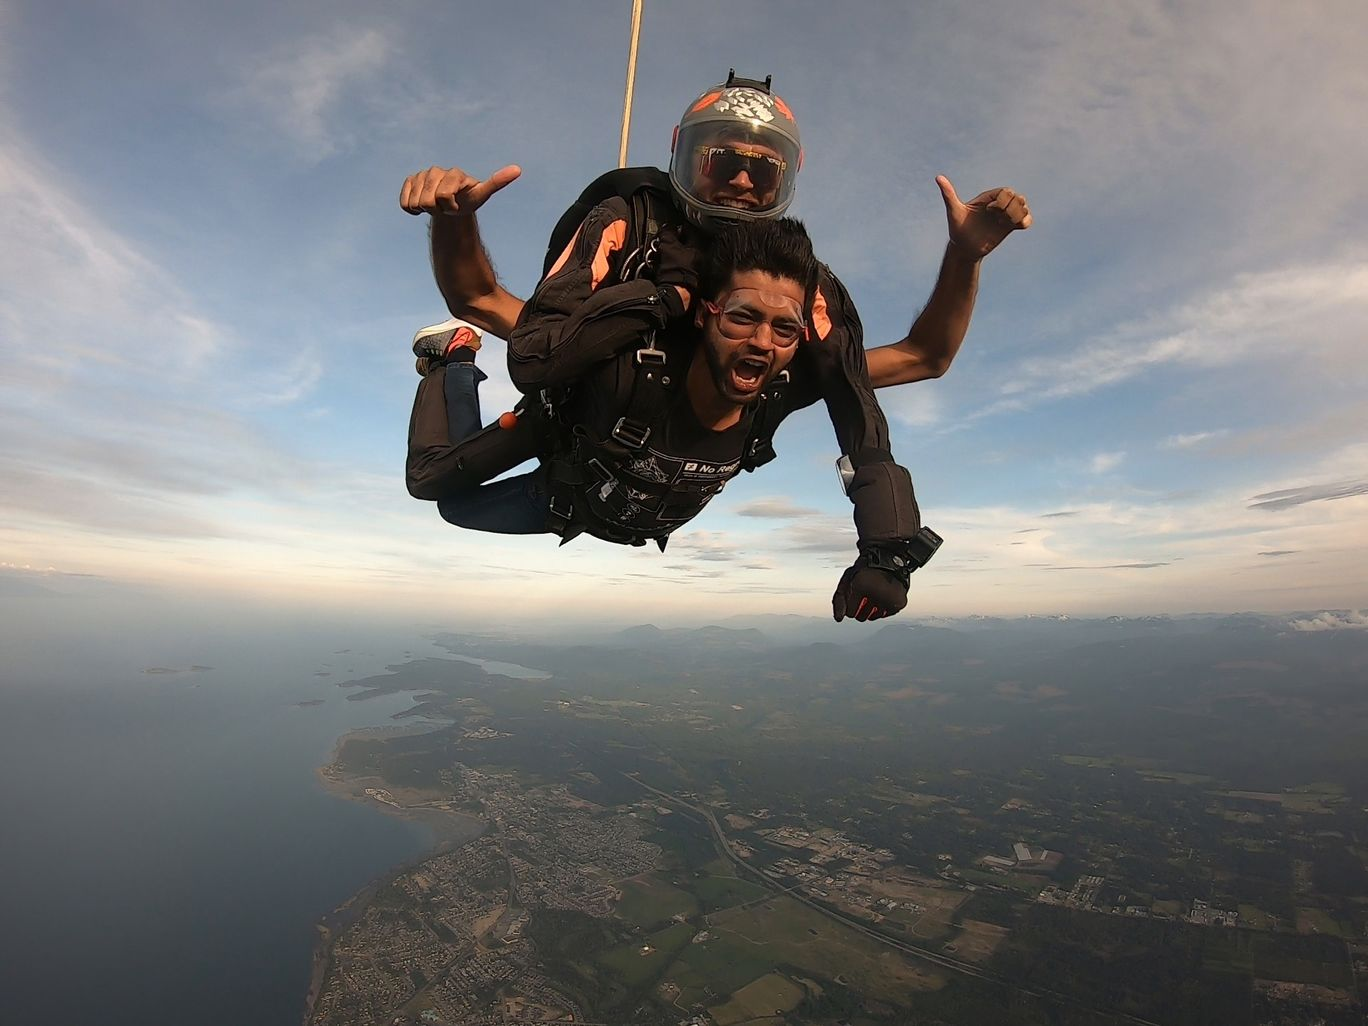 Photo of Skydive Vancouver Island By shailesh singh